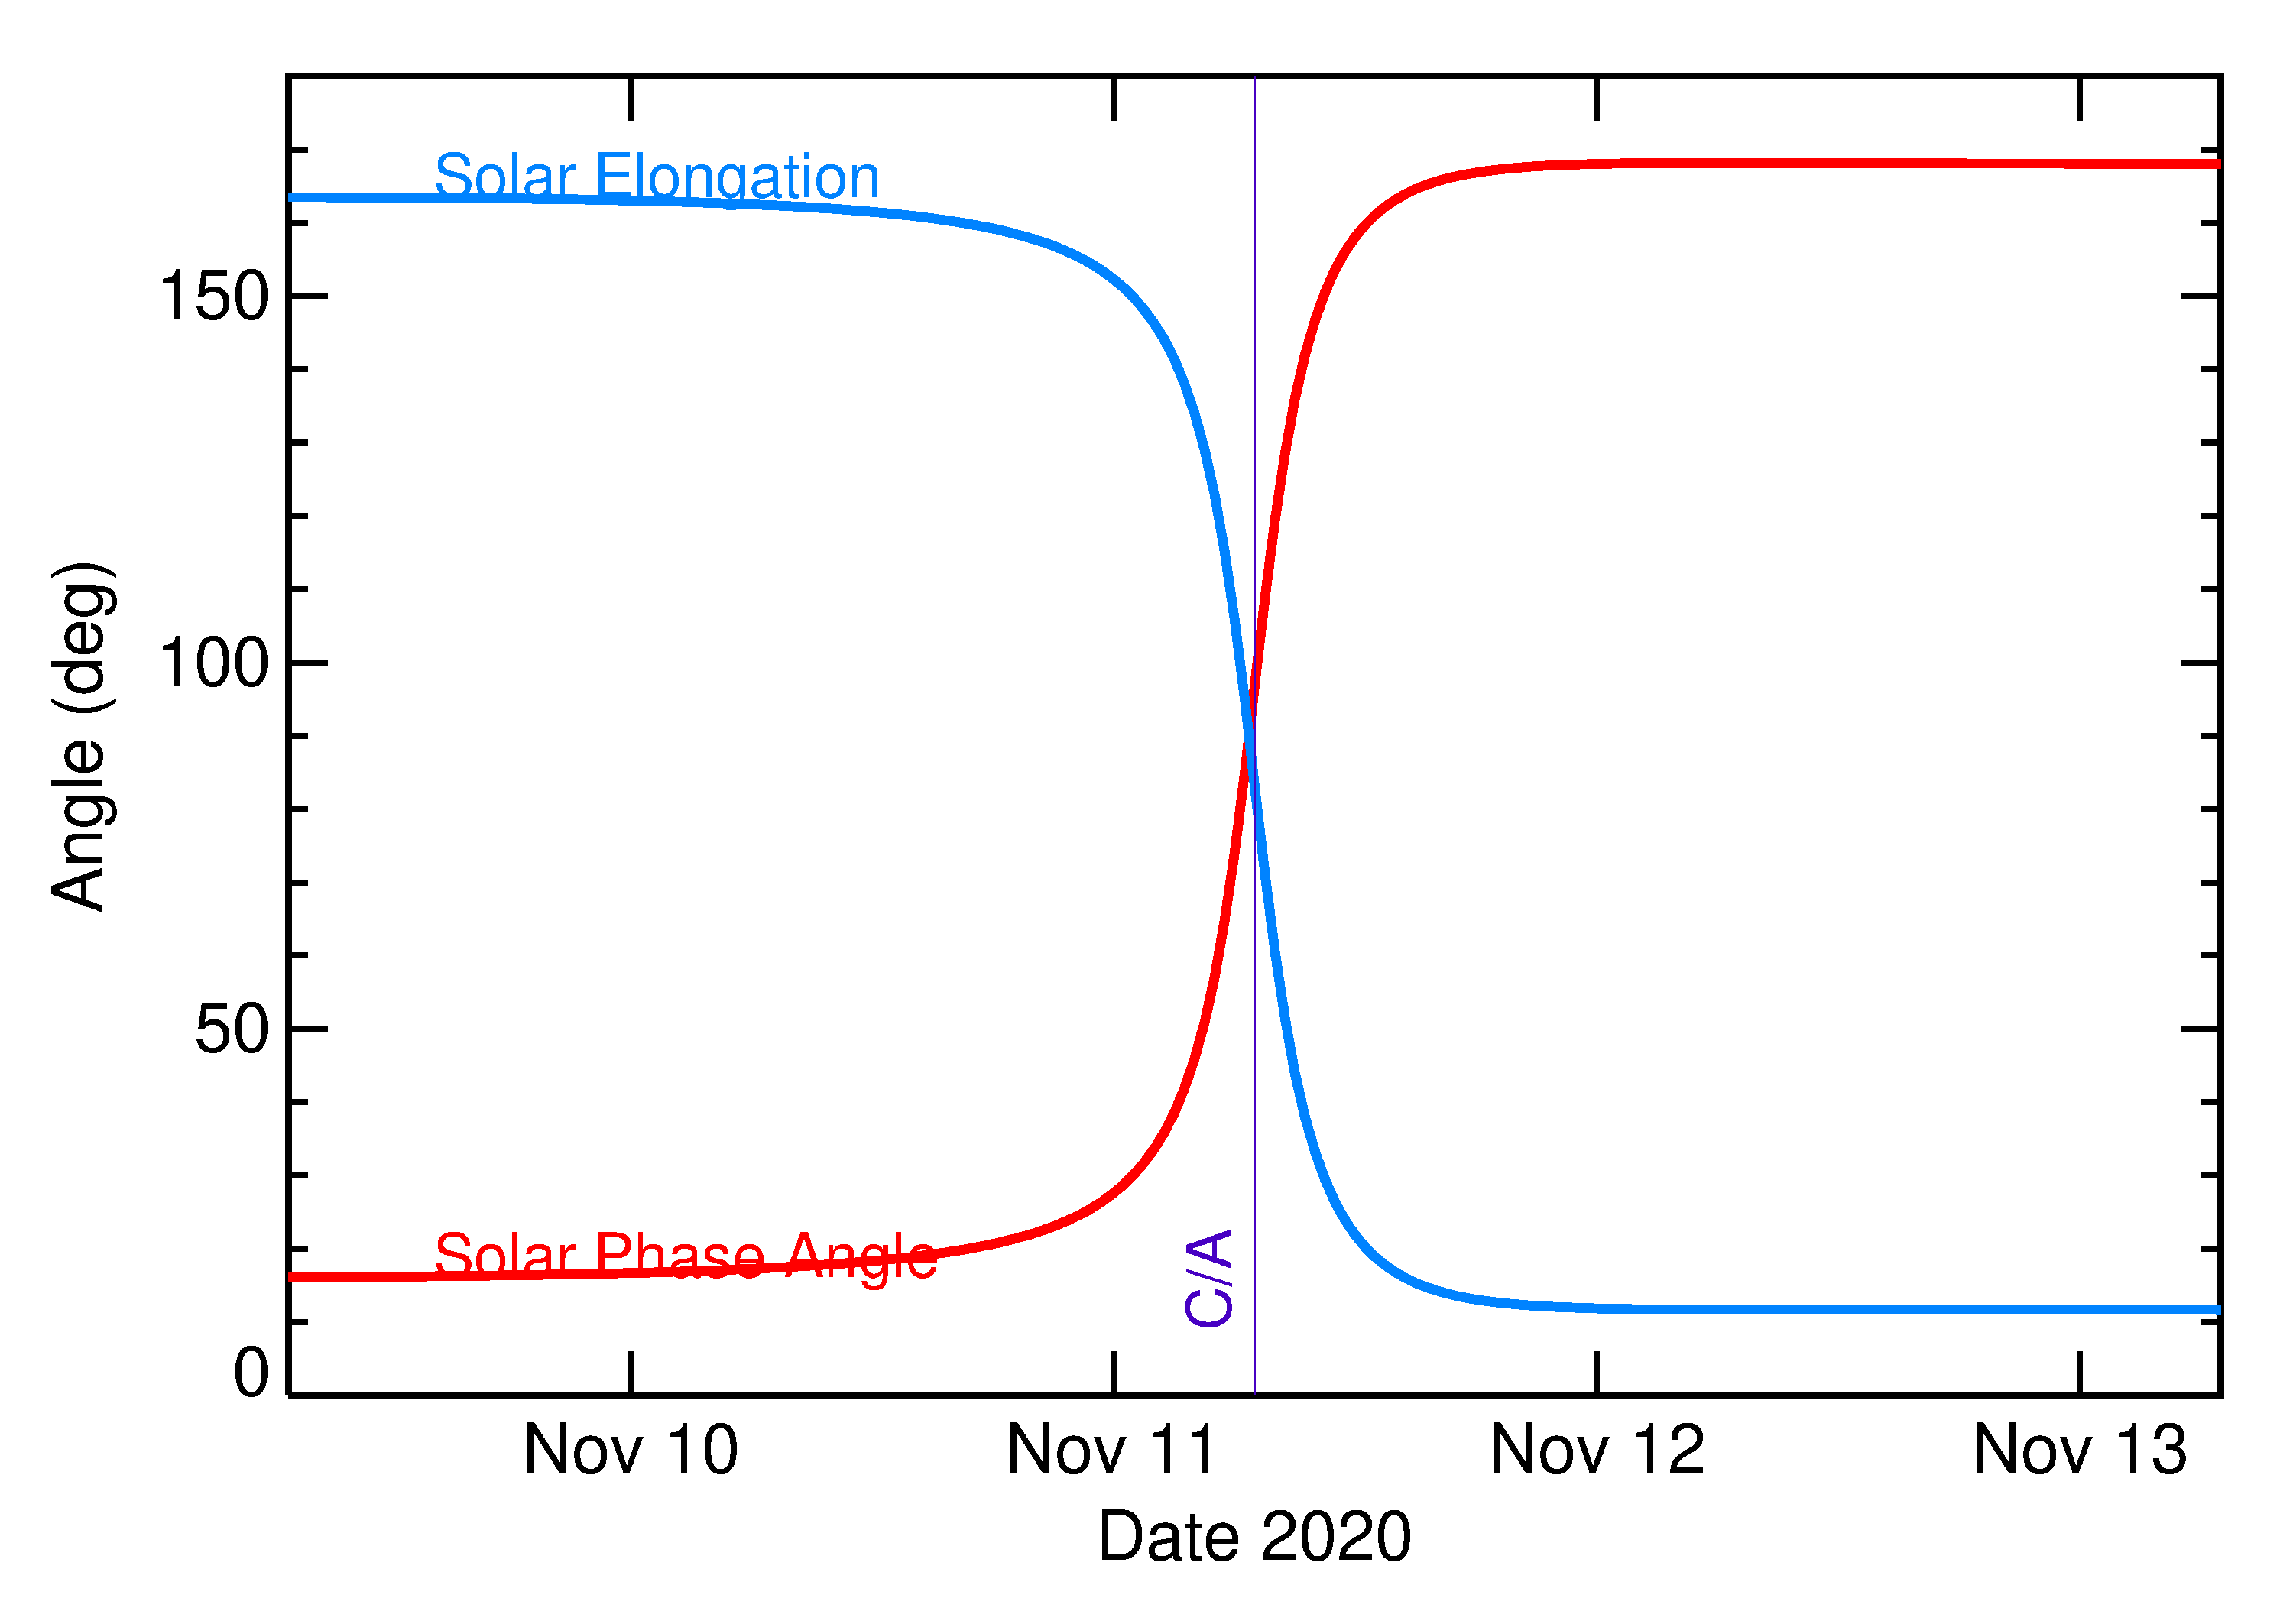 Solar Elongation and Solar Phase Angle of 2020 VP1 in the days around closest approach